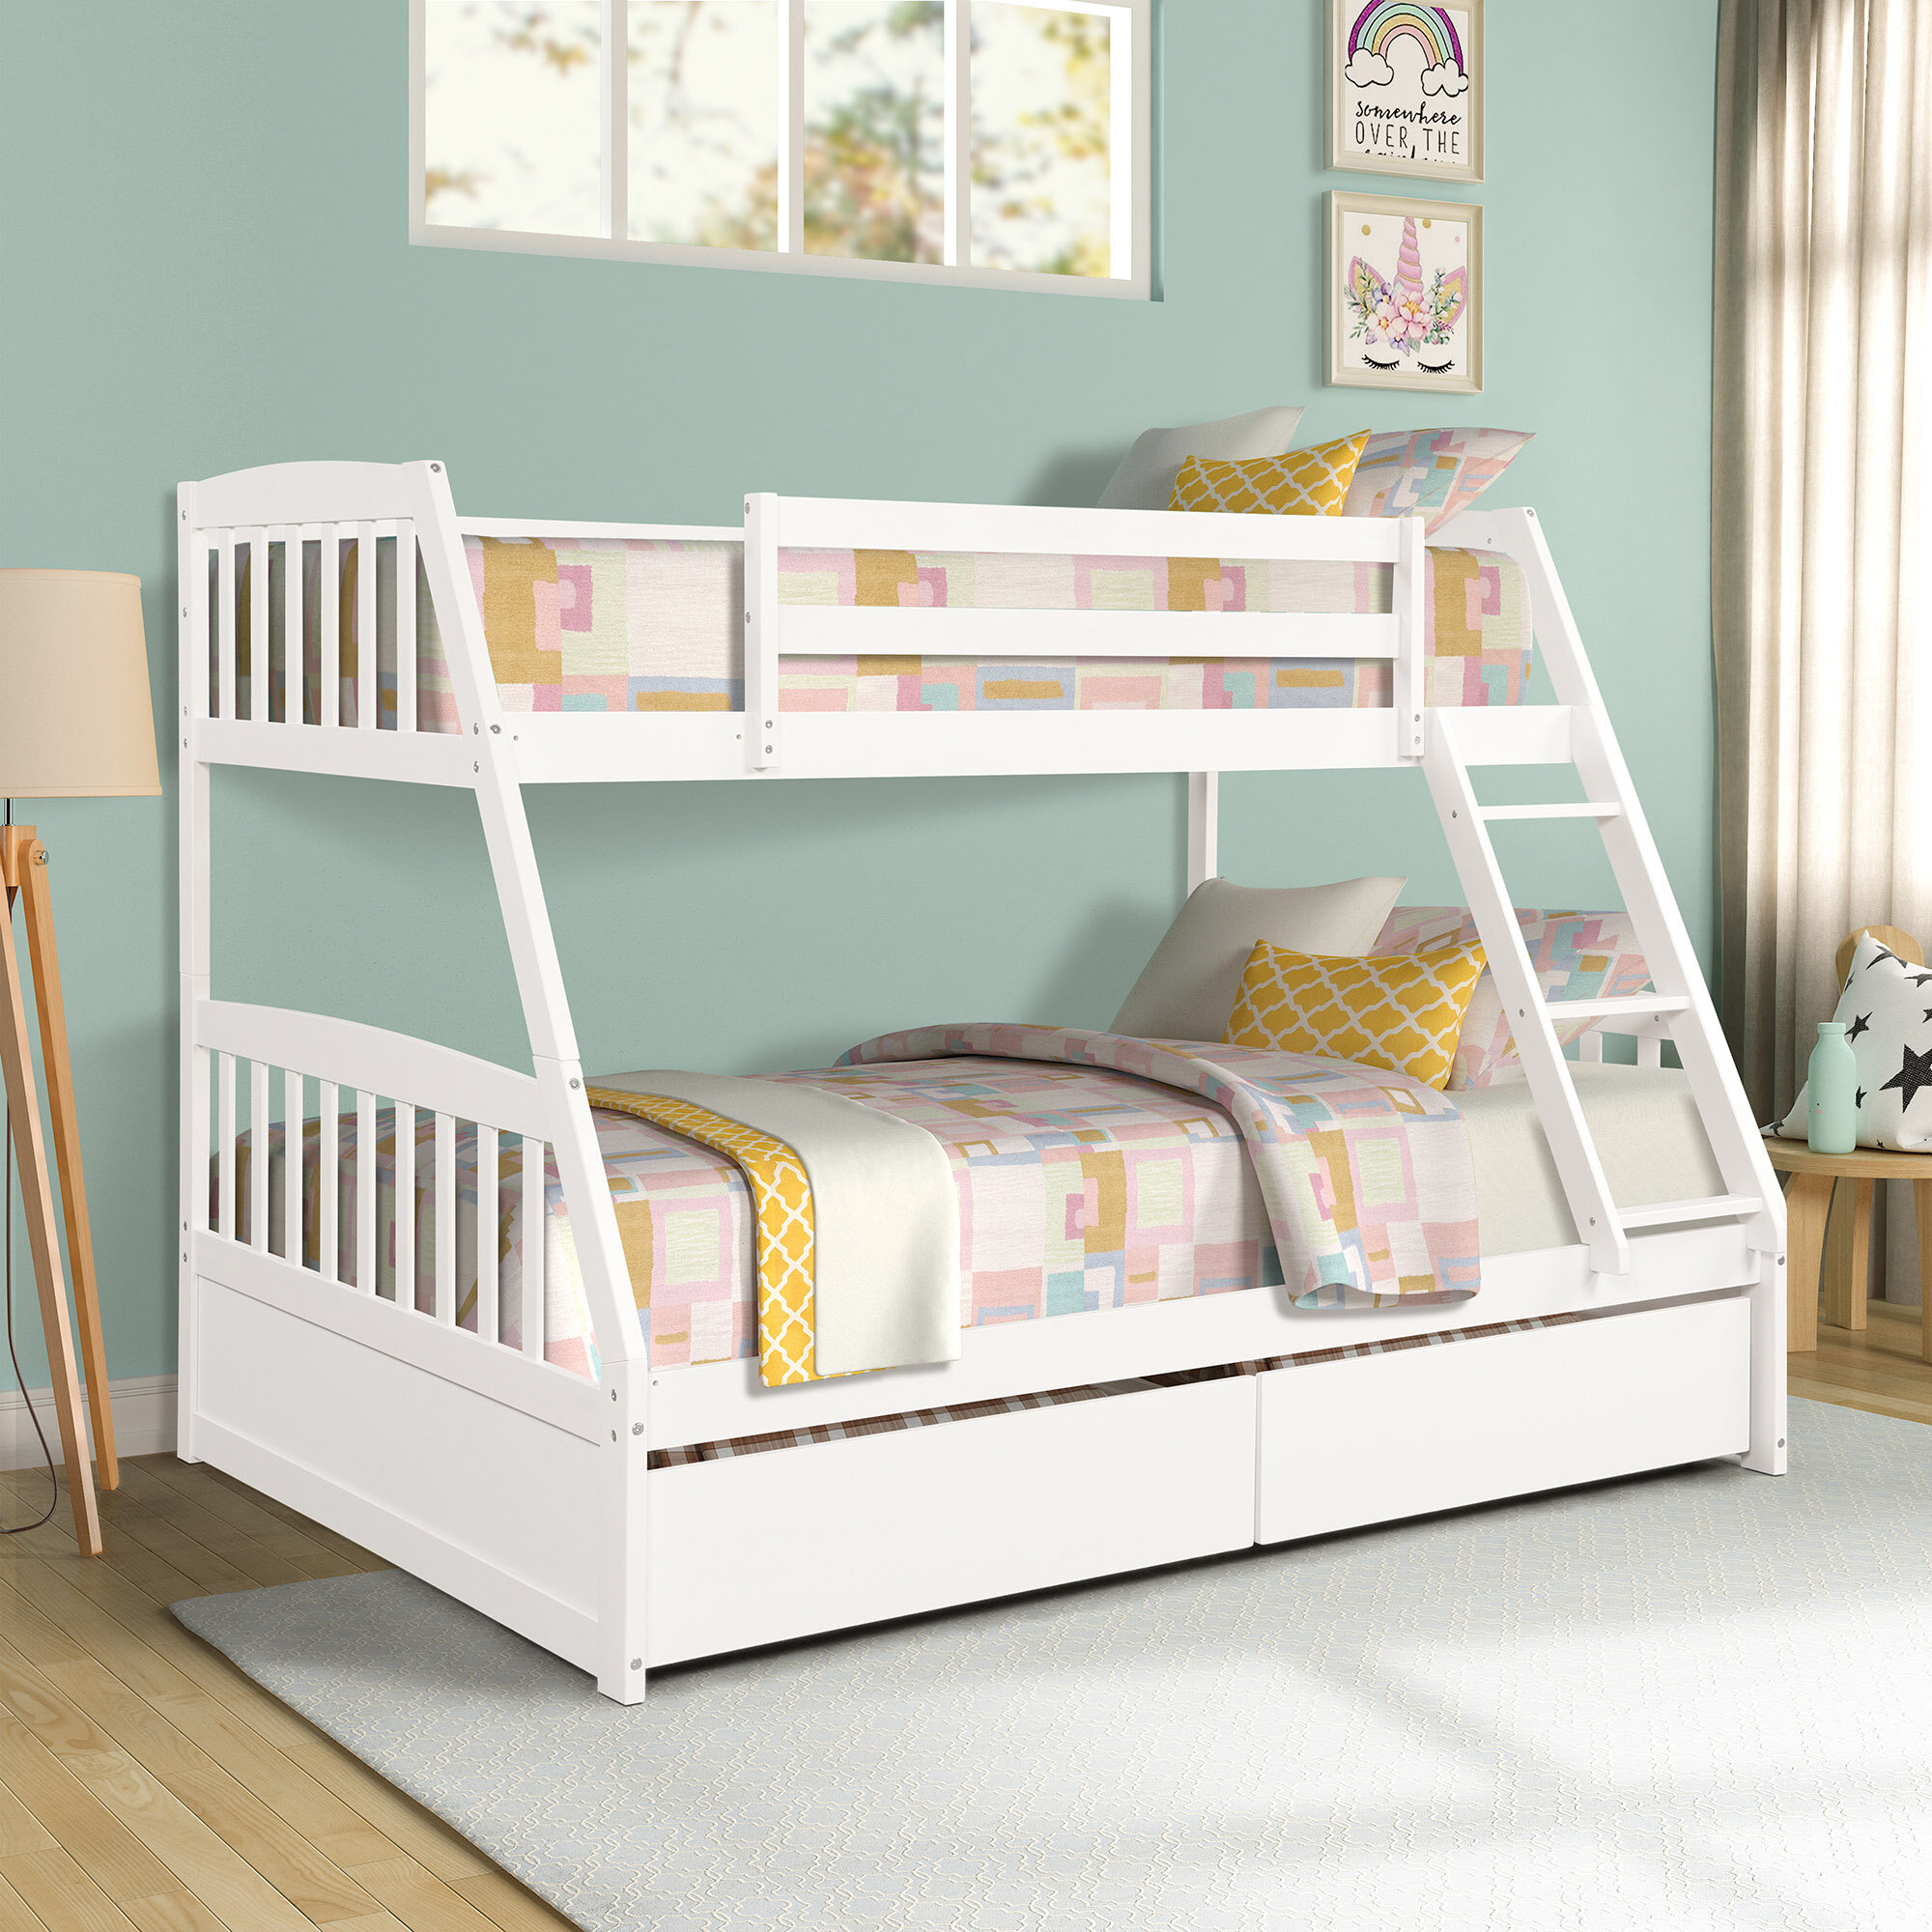 Picture of: Harriet Bee Anchorage Twin Over Full Bunk Bed With Drawers Reviews